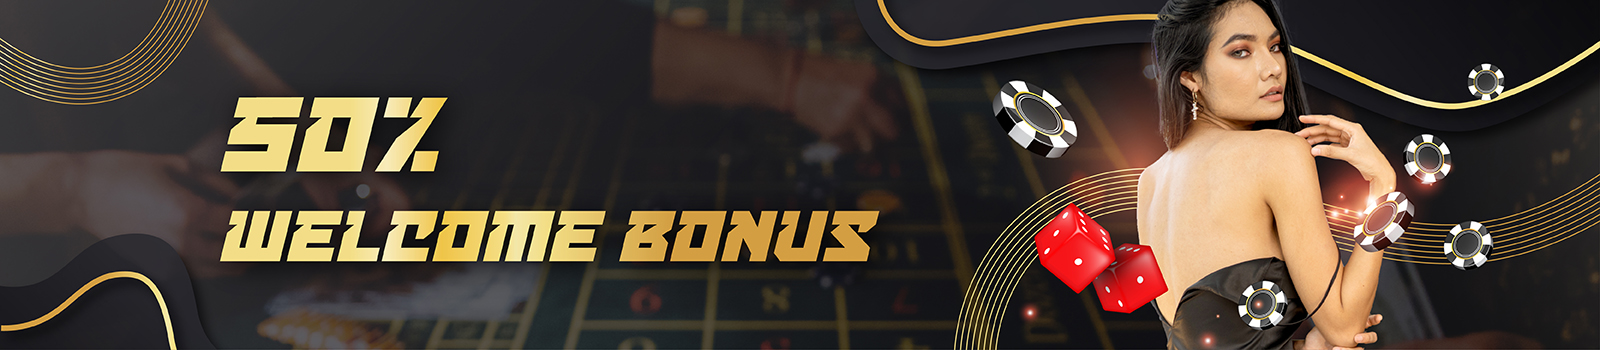 Deluxe89 Promotion Banner 3